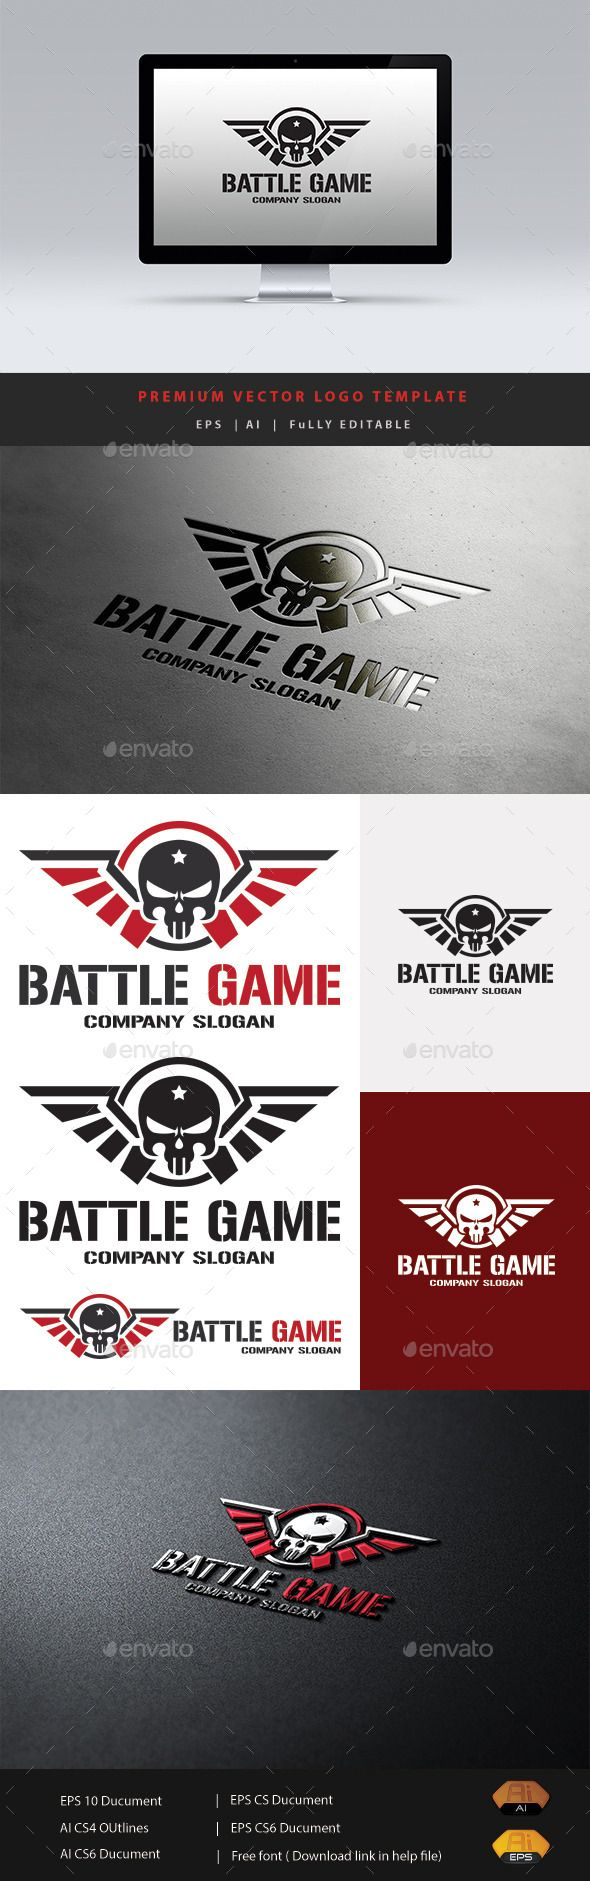 Battle Game — Vector EPS #team #video game • Available here → https://graphicriver.net/item/battle-game/12274624?ref=pxcr